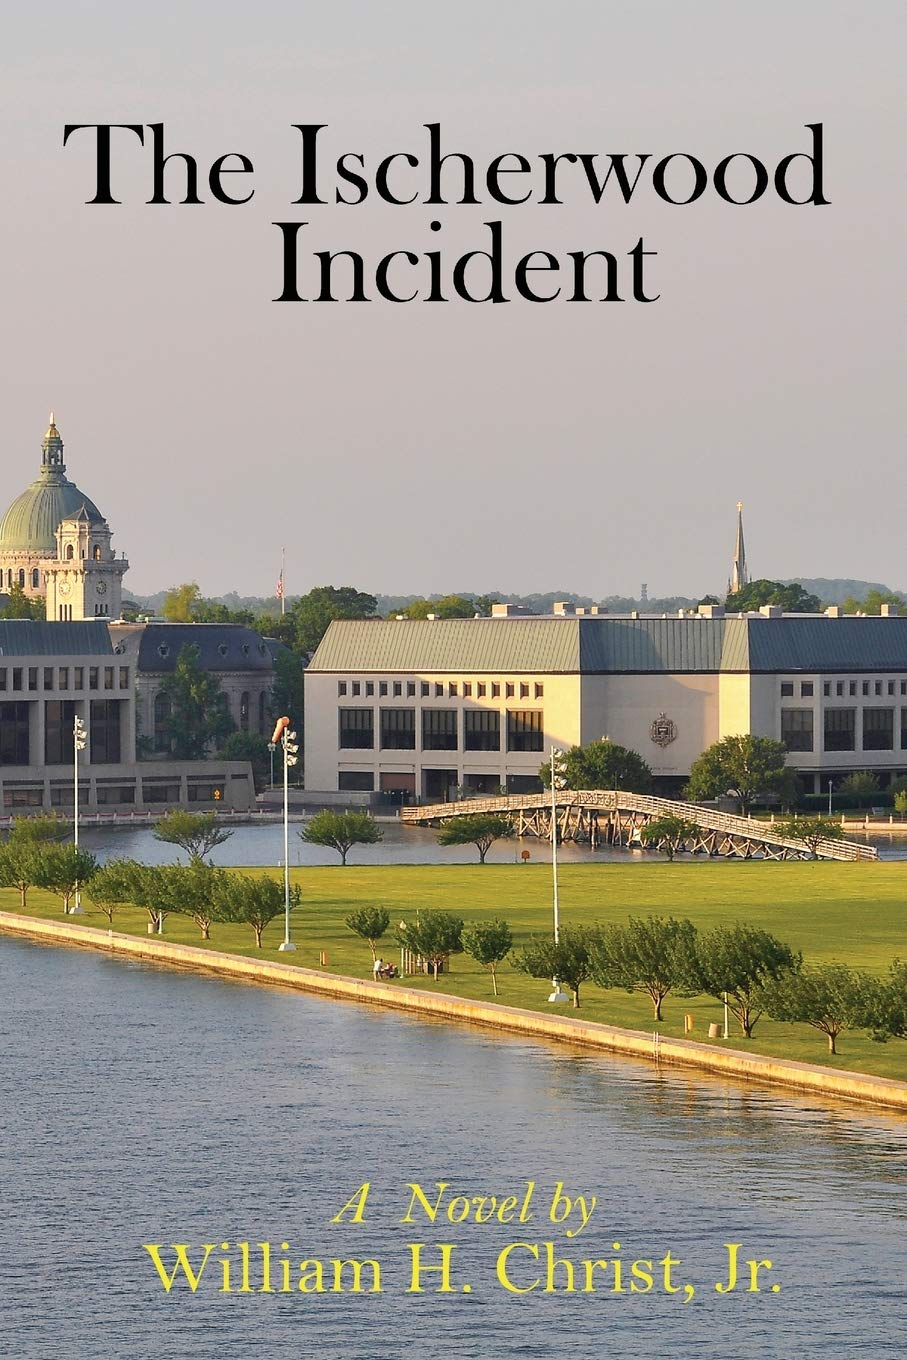 """The Ischerwood Incident"" by William H. Christ Jr. Uncovers Dark Mysteries of the U.S. Naval Academy"